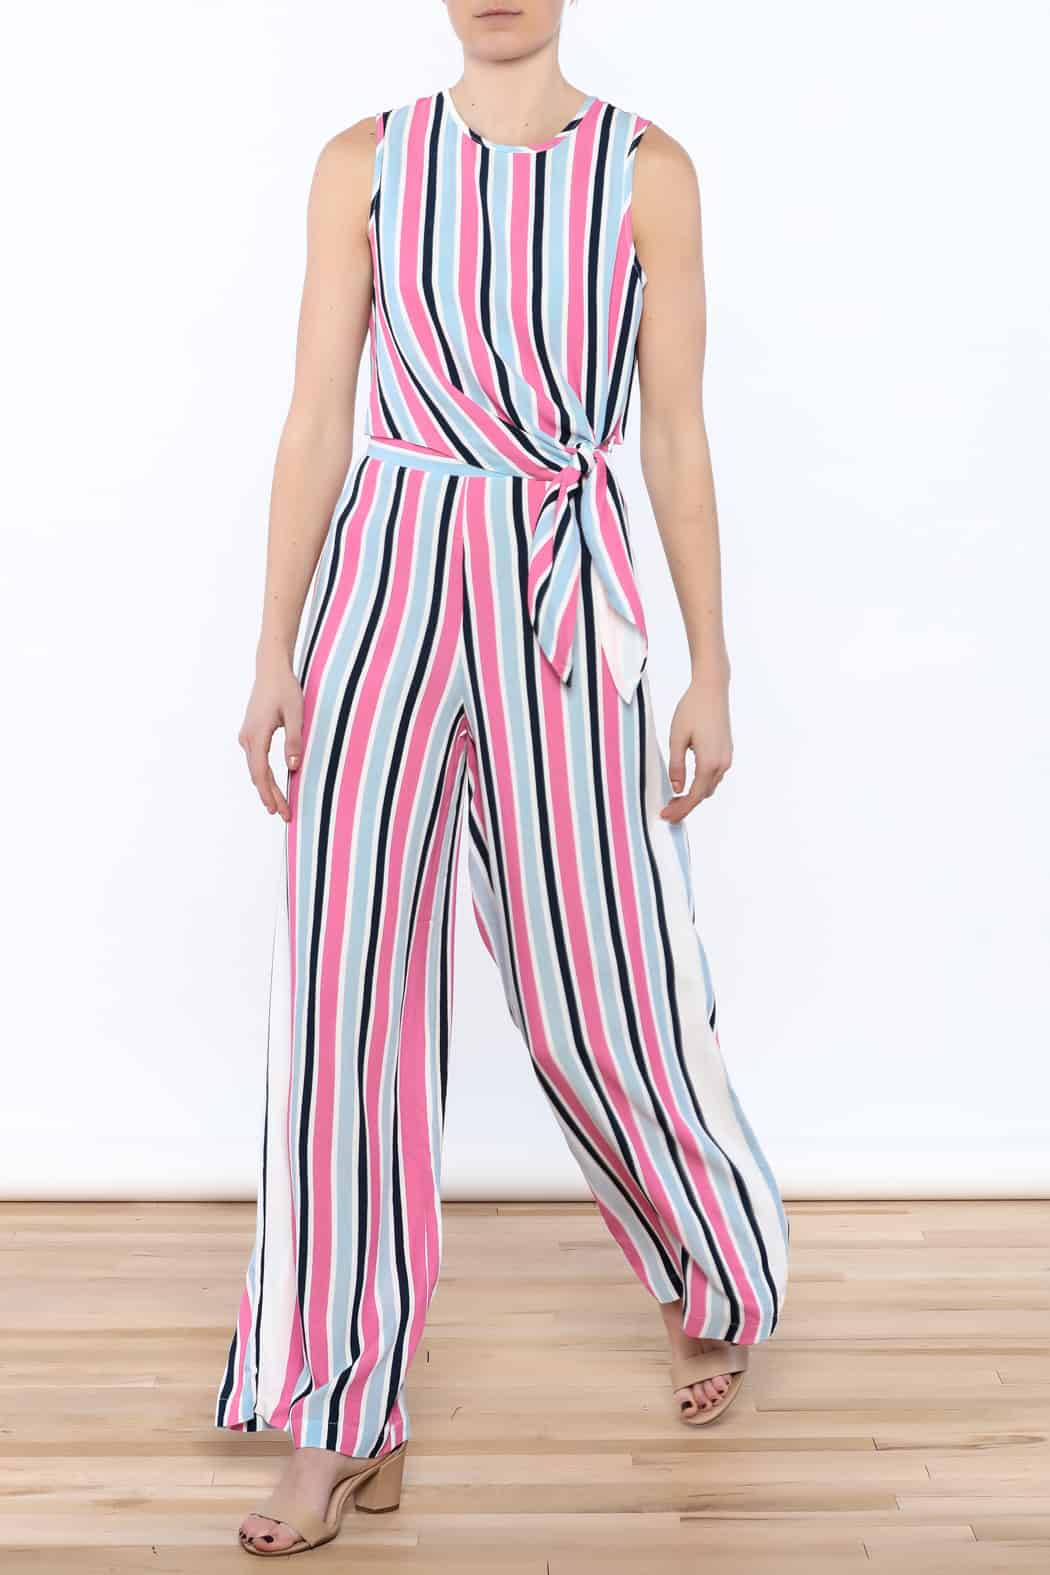 Pant suit with bright seaside stripes